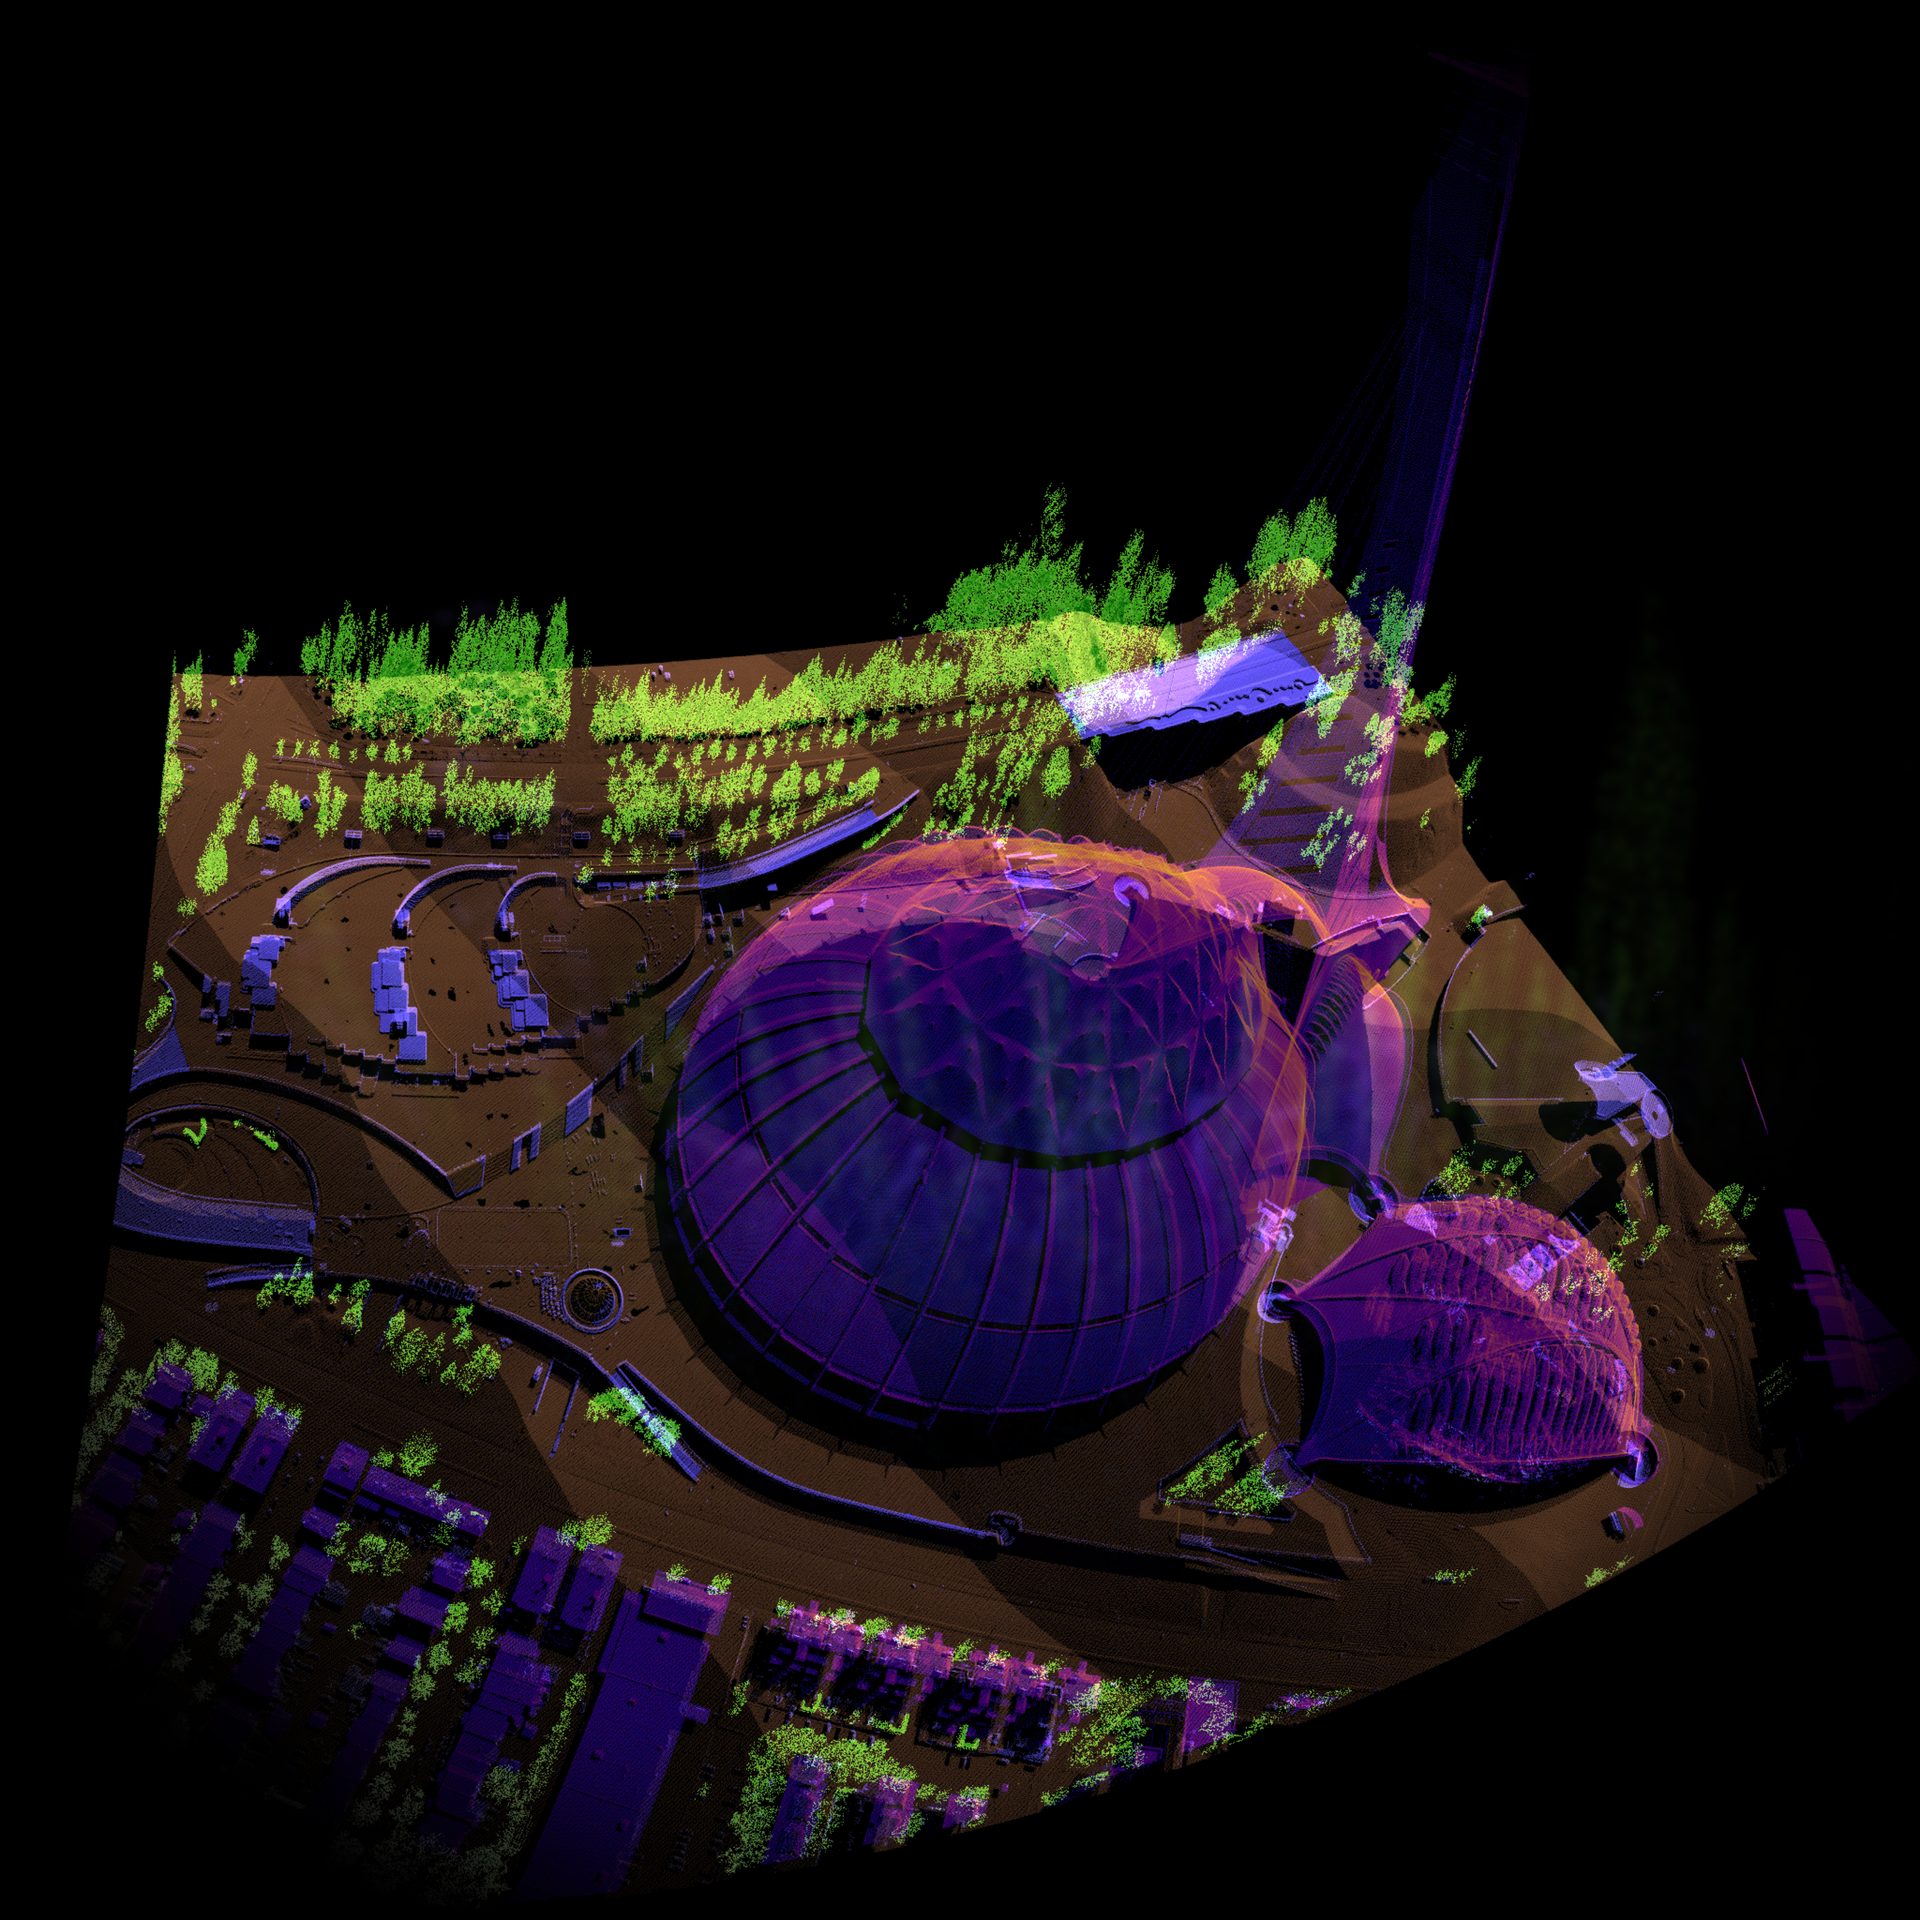 3D experiments with LiDAR